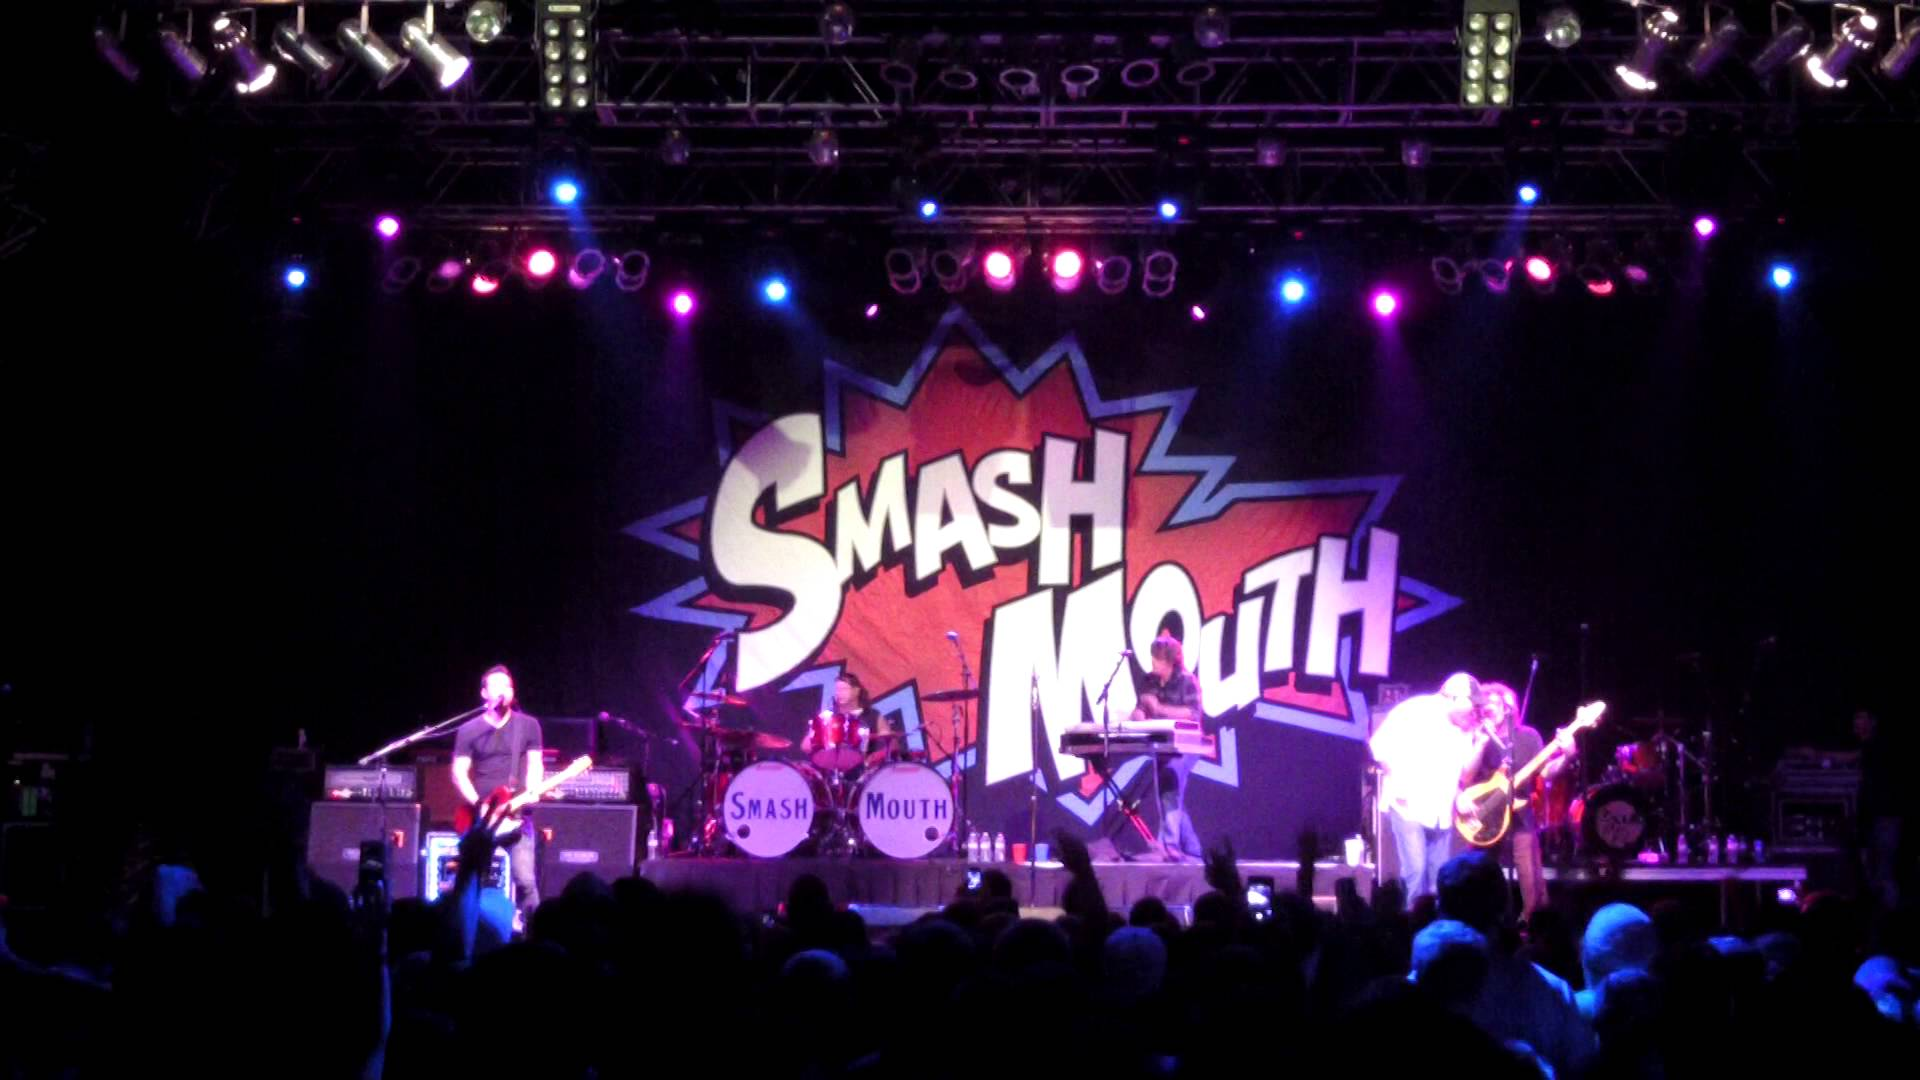 Sean Hurwitz playing a Shabat guitar in concert with Smash Mouth.